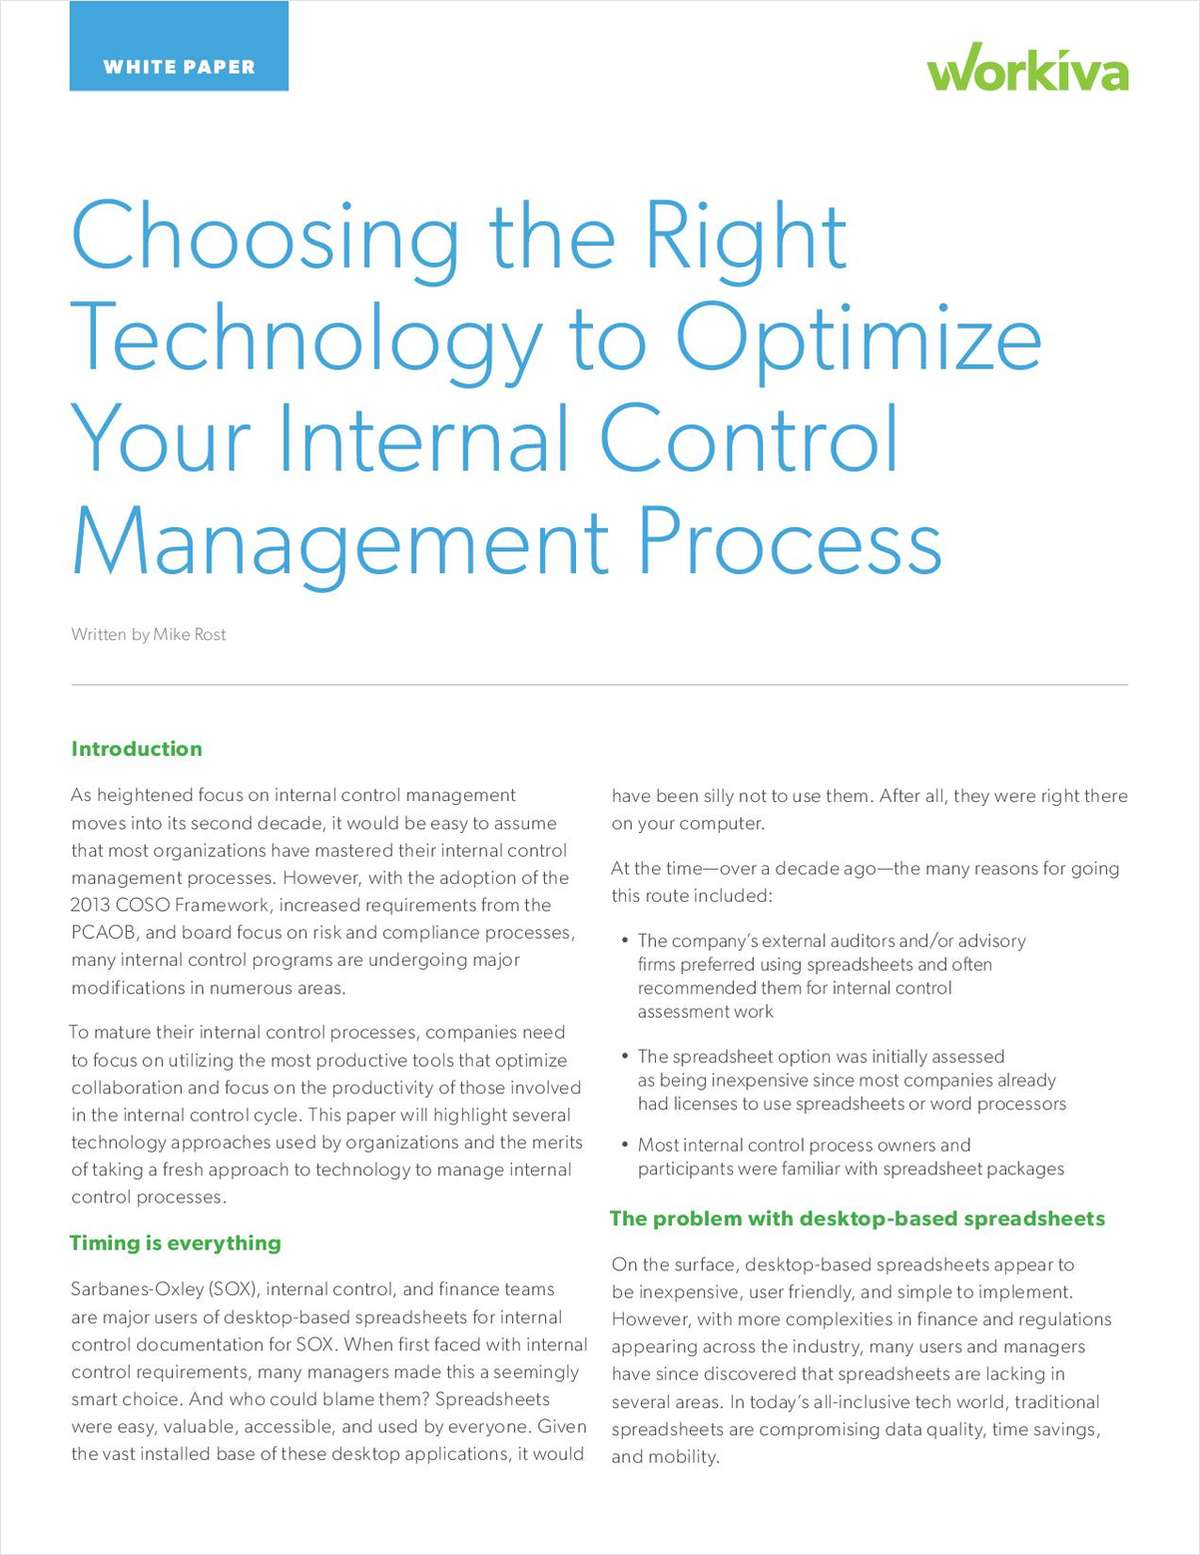 Choosing the Right Technology for Internal Control Management